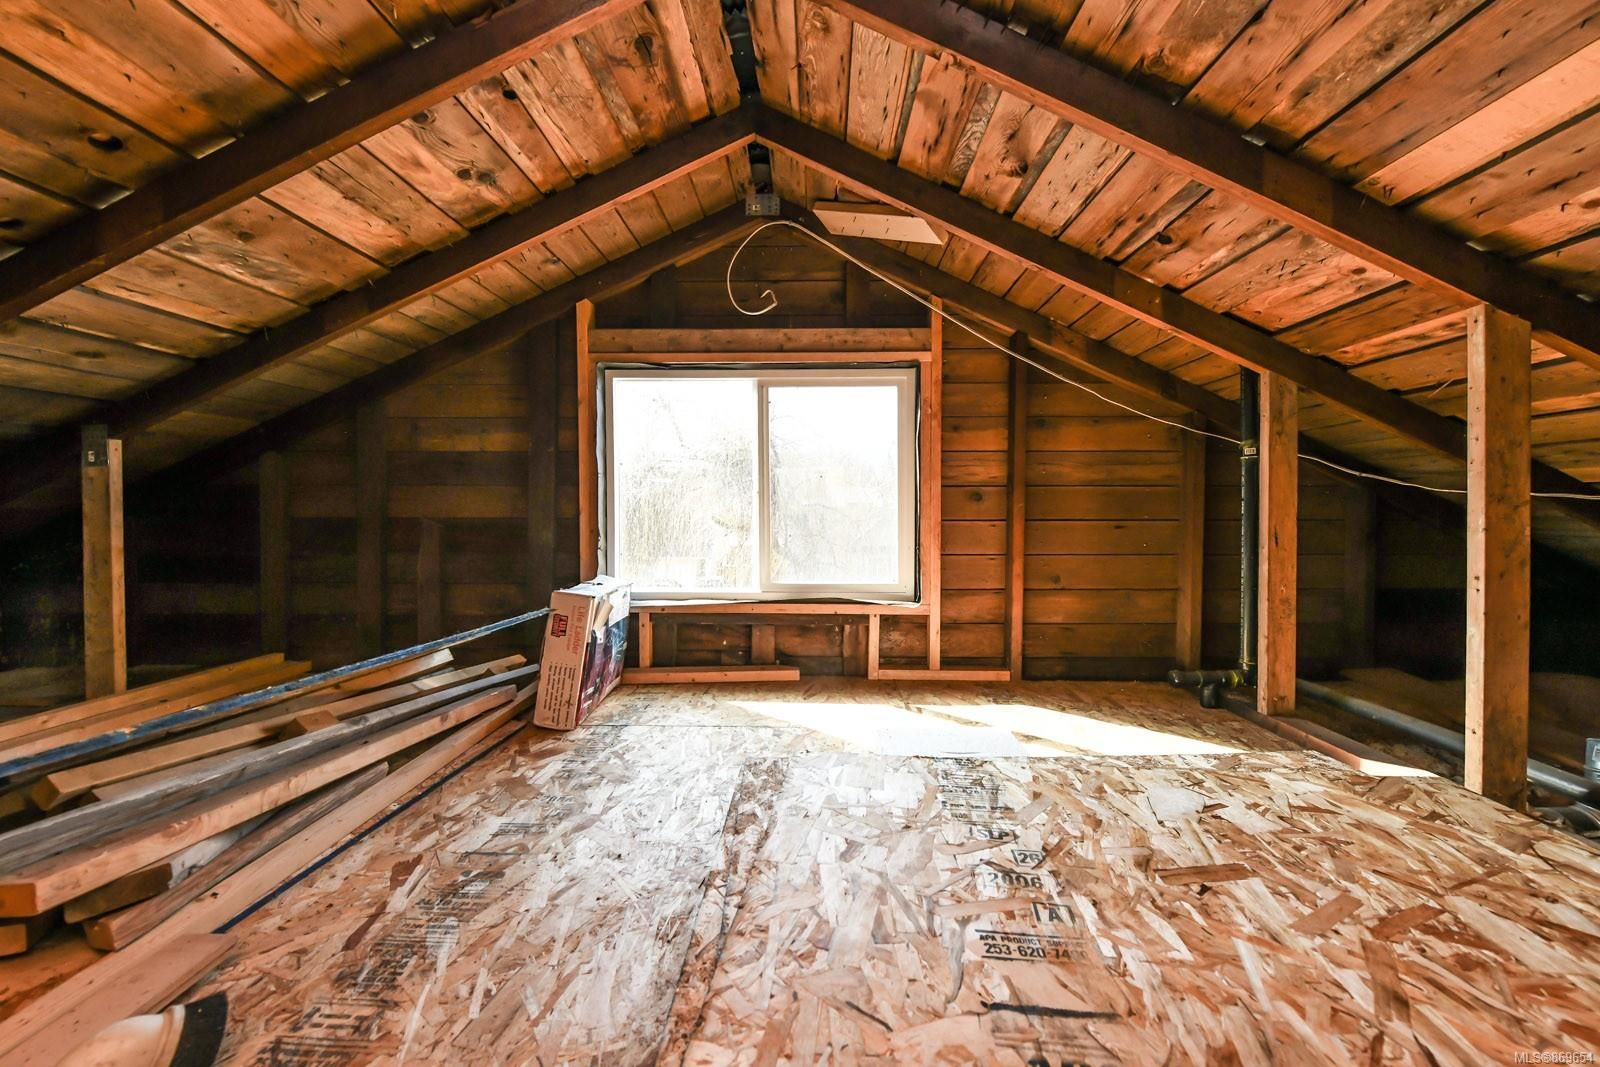 Photo 15: Photos: 4712 Cumberland Rd in : CV Cumberland House for sale (Comox Valley)  : MLS®# 869654